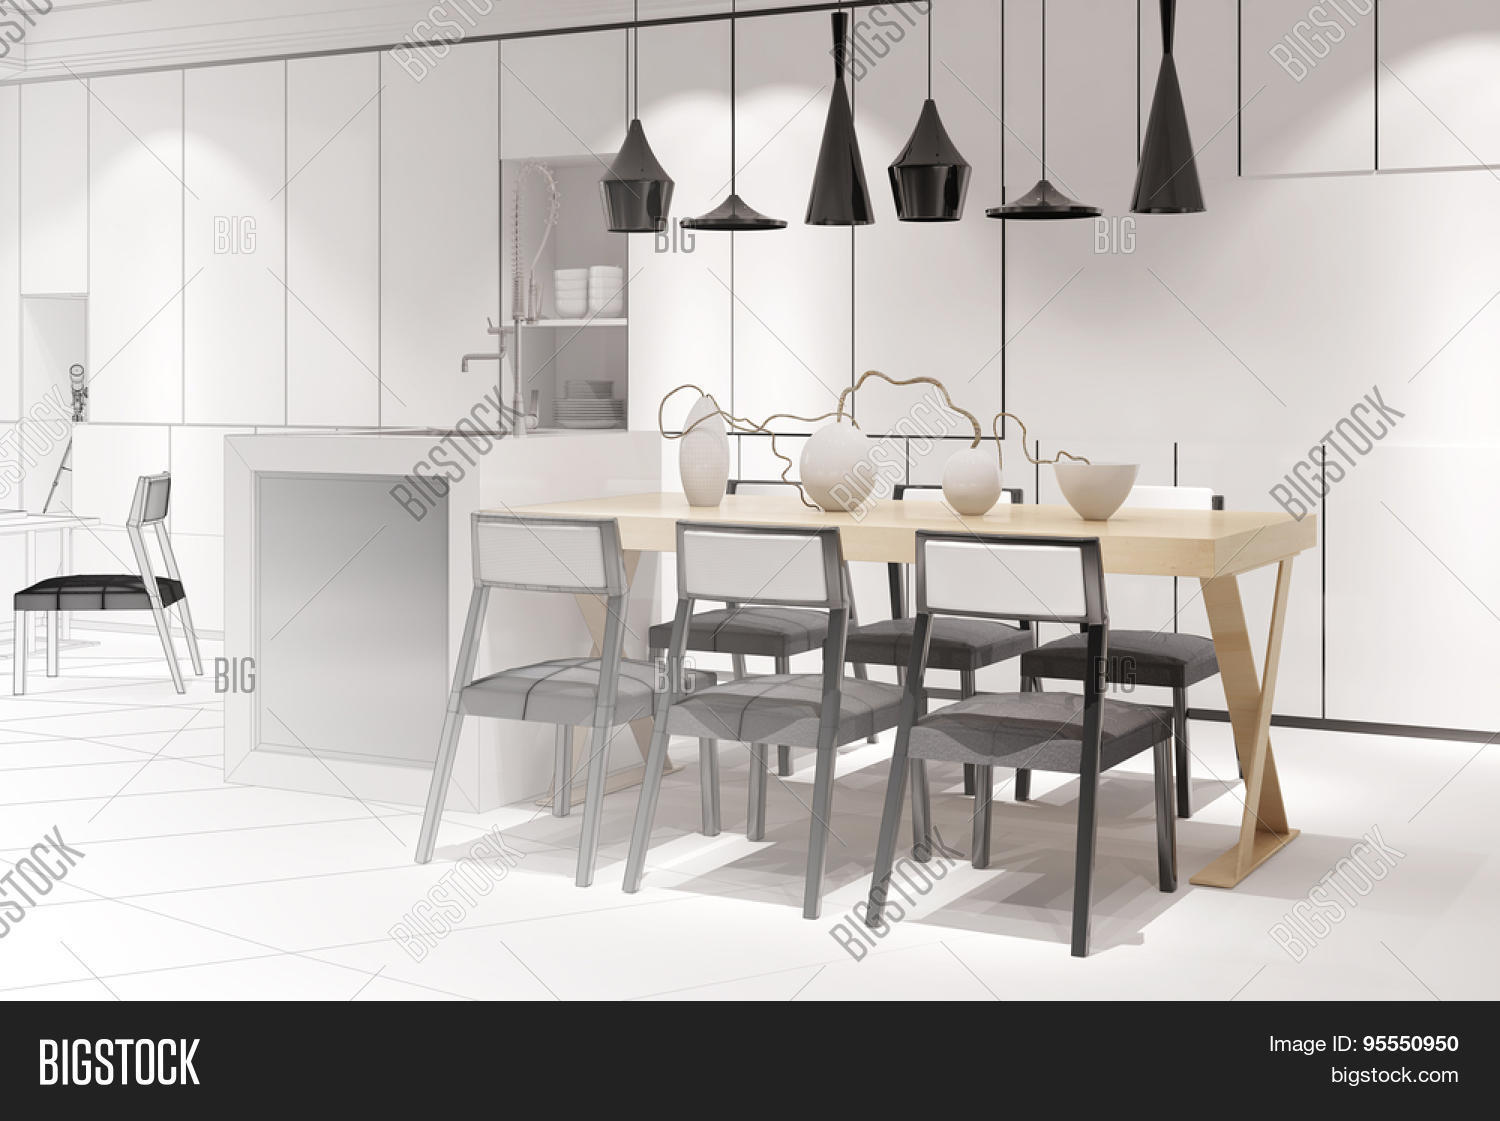 sketch of a modern eat-in-kitchen with dining table from interior